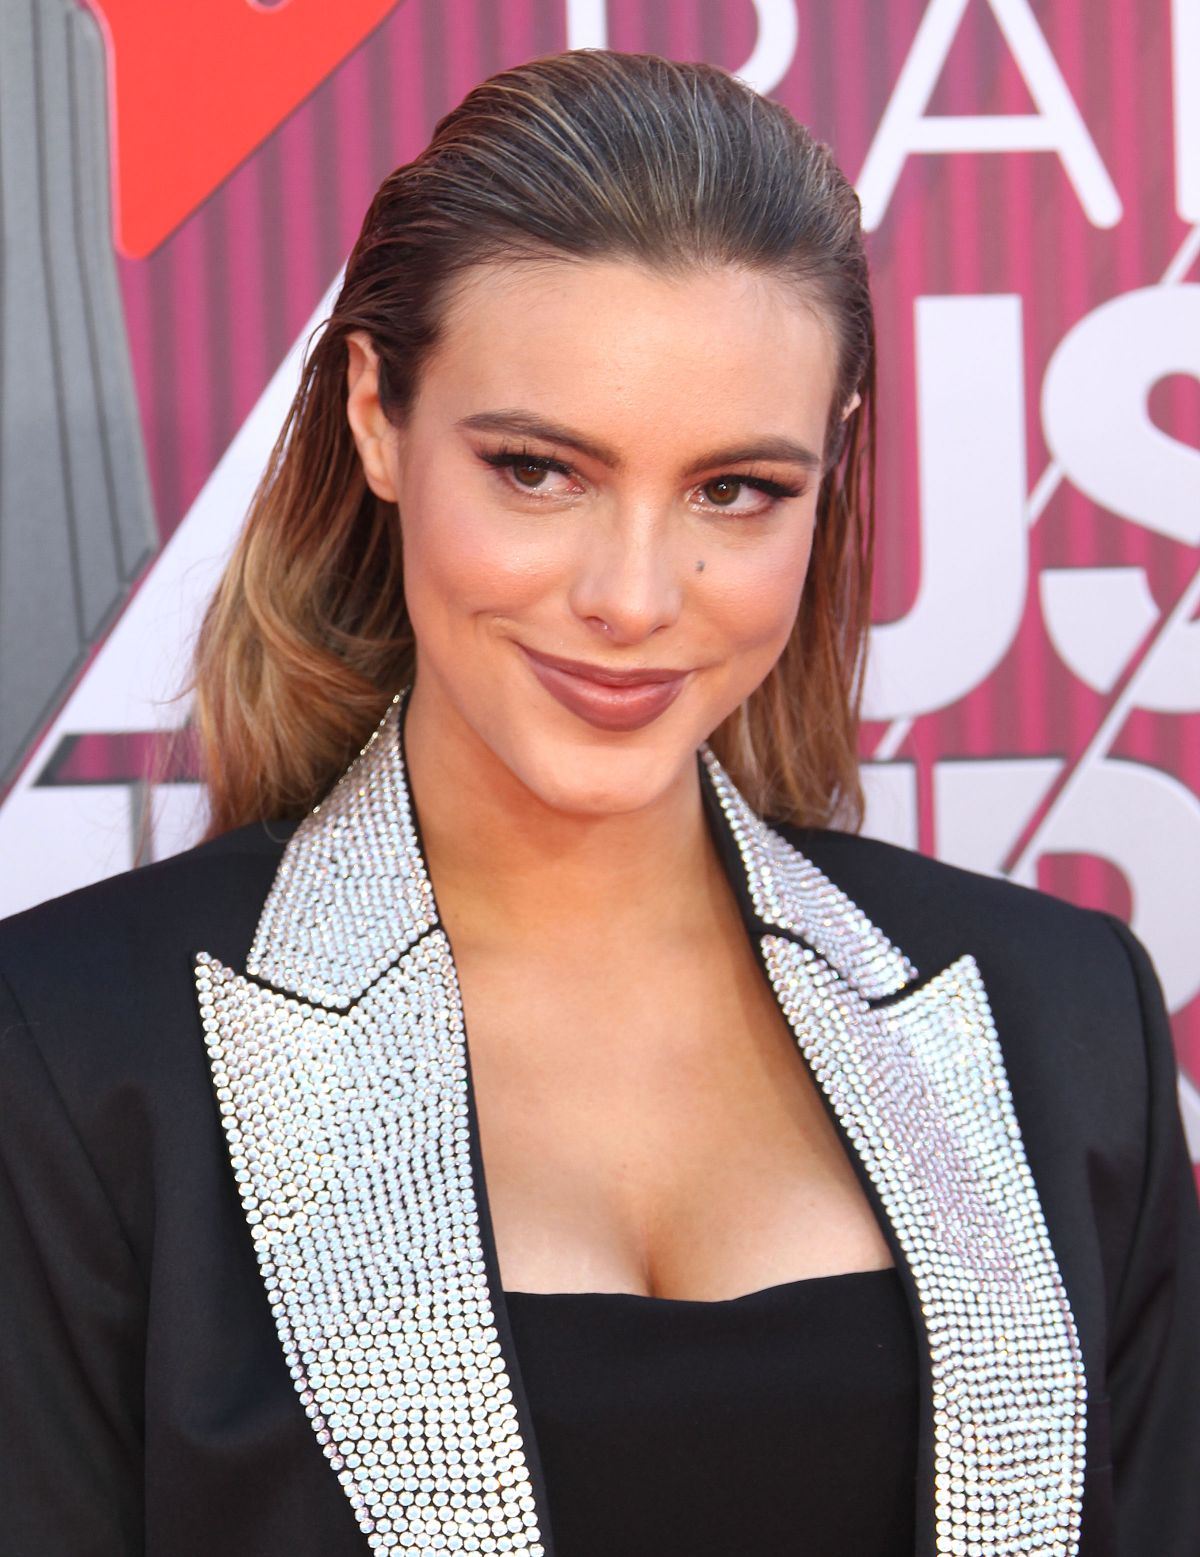 Lele Pons at Iheartradio Music Awards 2019 in Los Angeles 2019